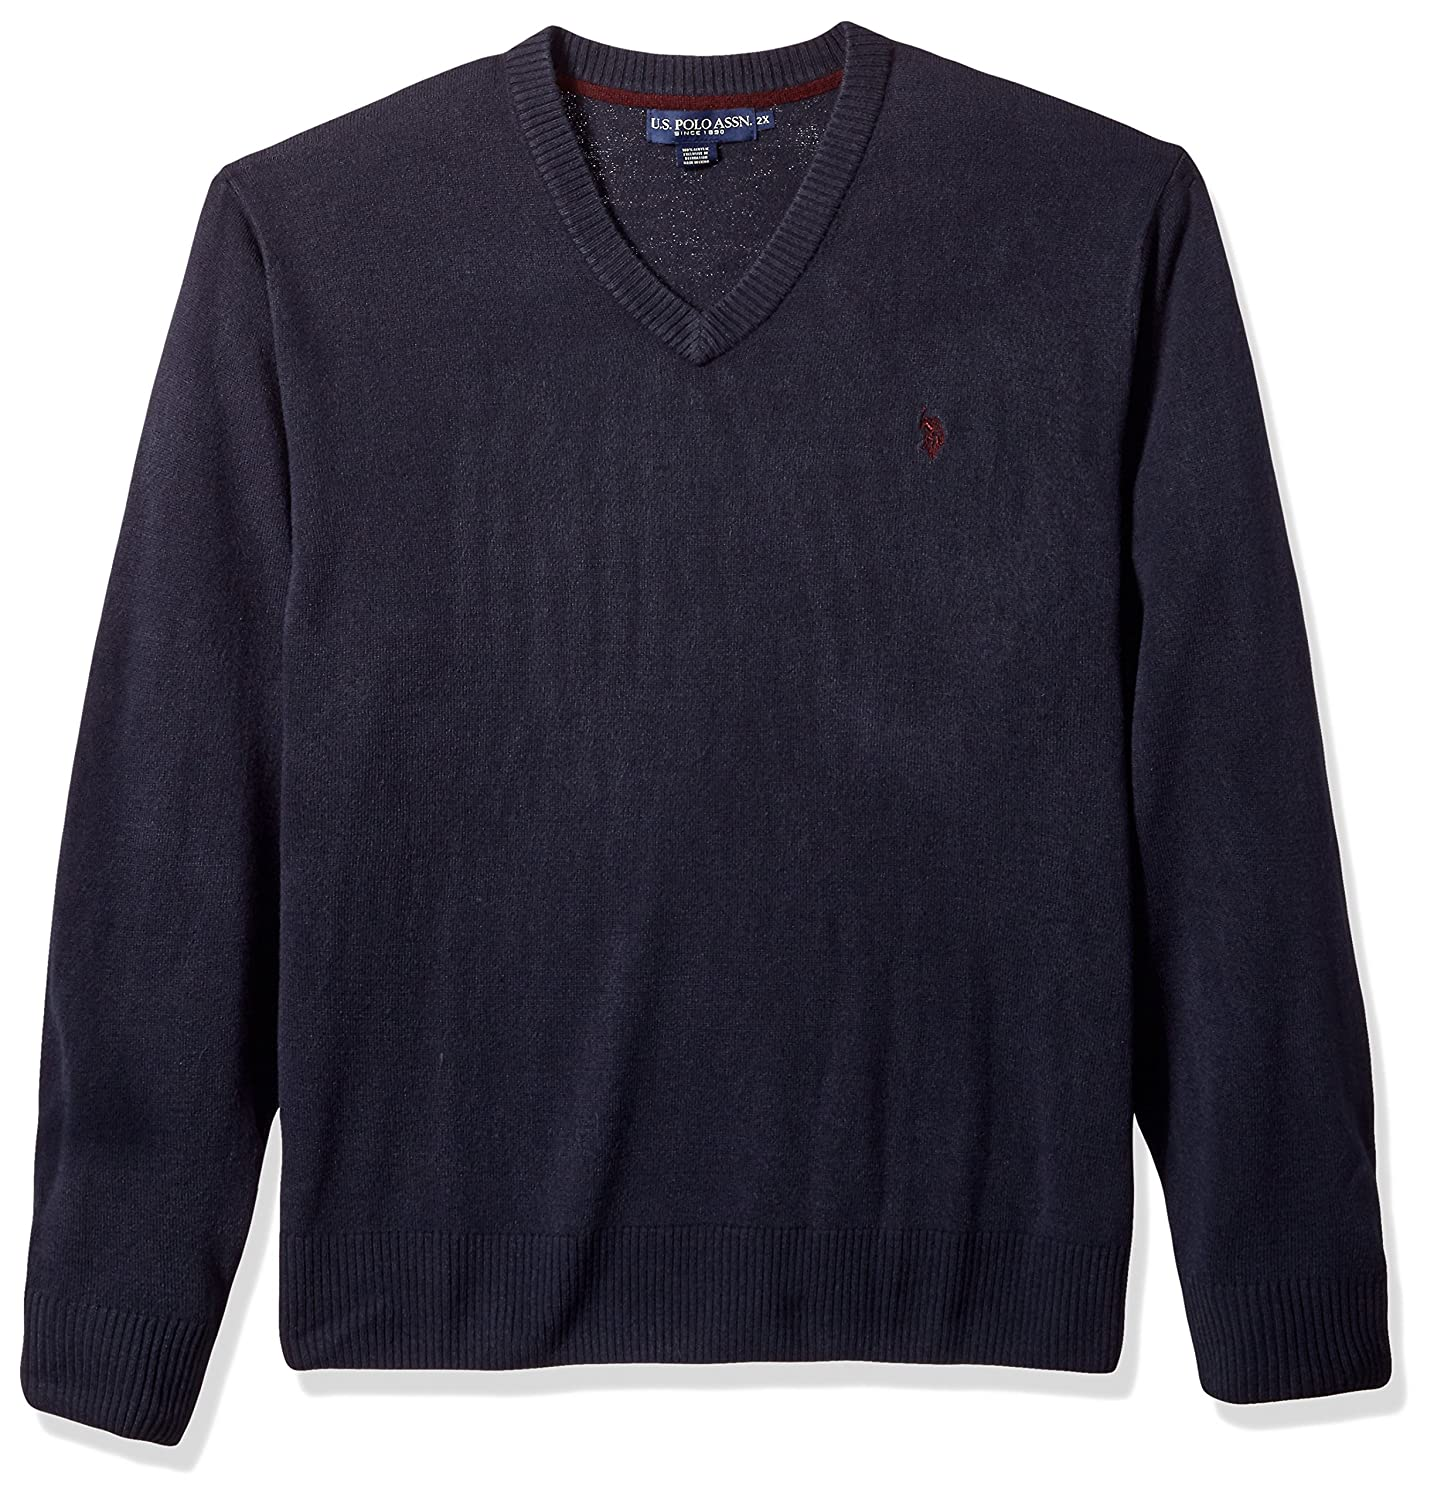 U.S. Polo Assn. Men's Solid V-Neck Sweater, Black, Small at Amazon ...